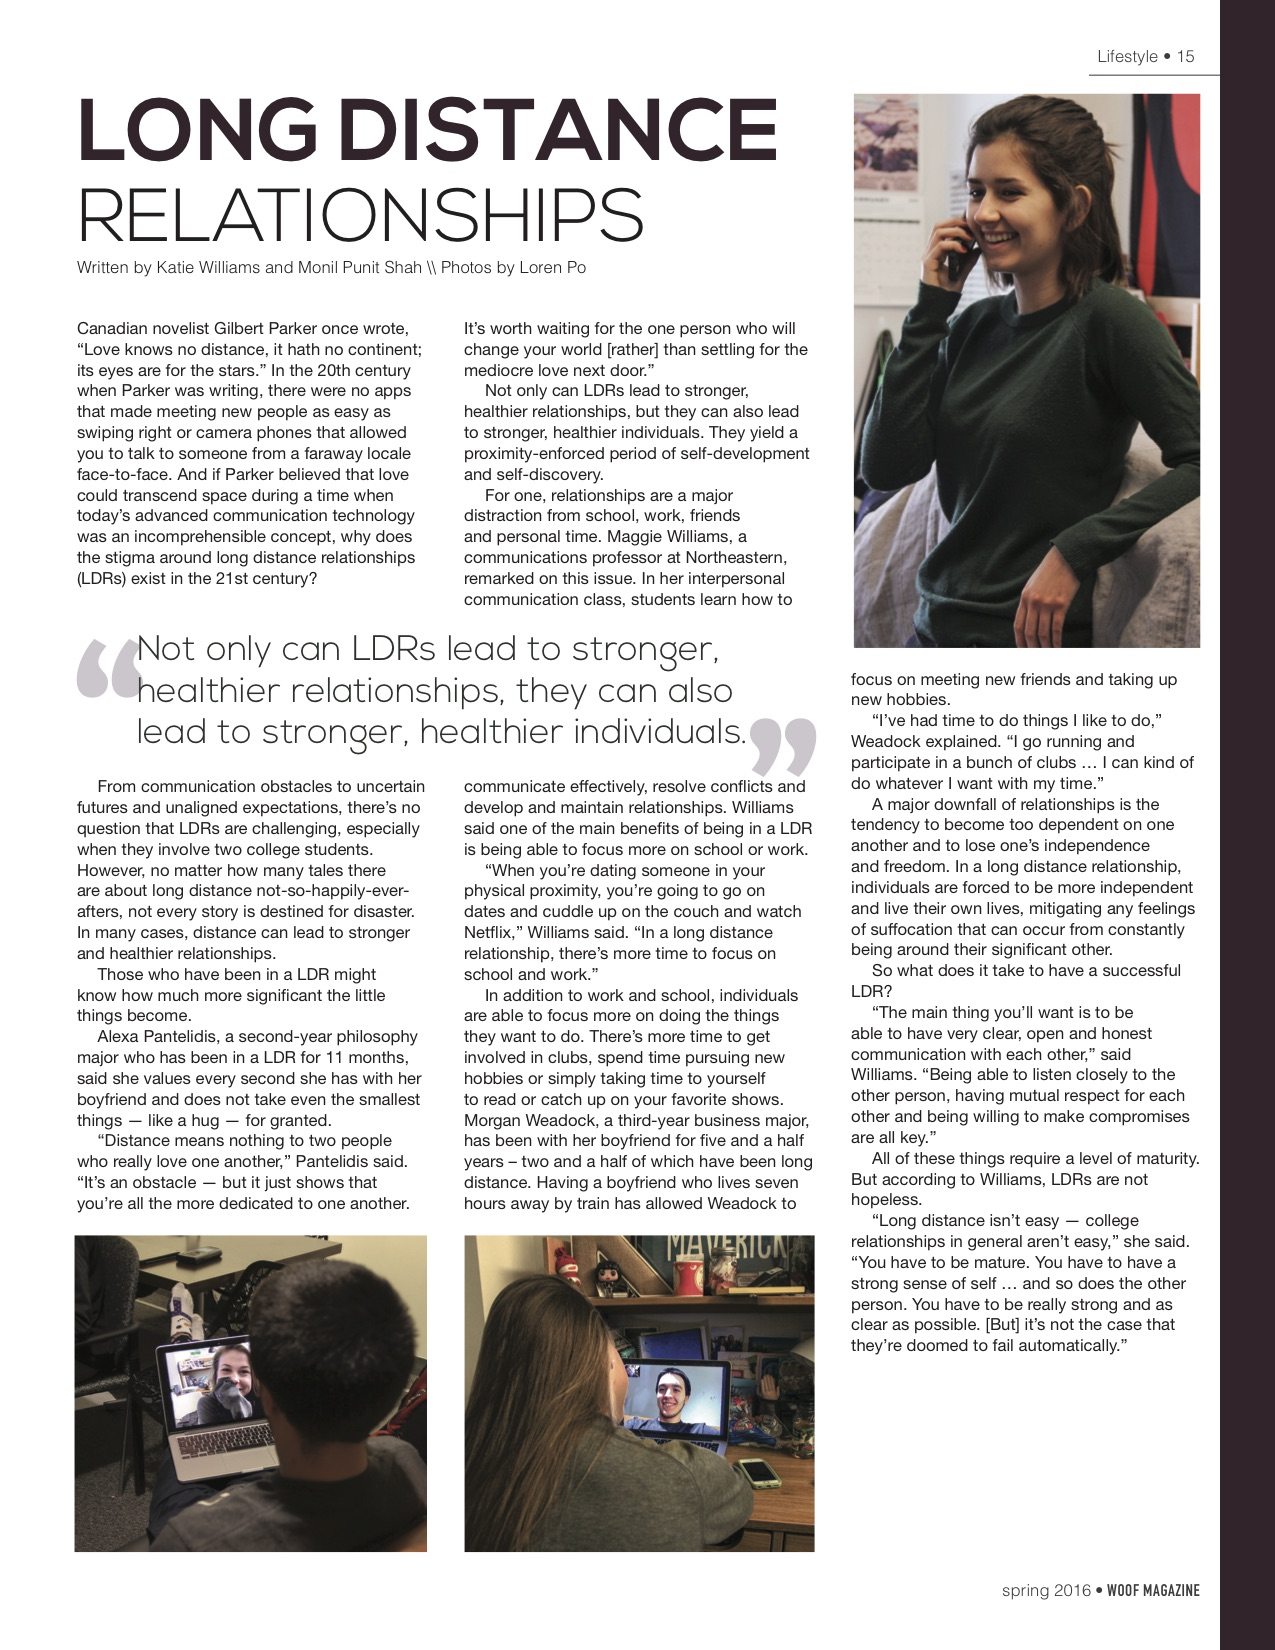 relationships and dating magazine Single matters magazine christian singles discuss the matters of life, relationships, singleness and faith.